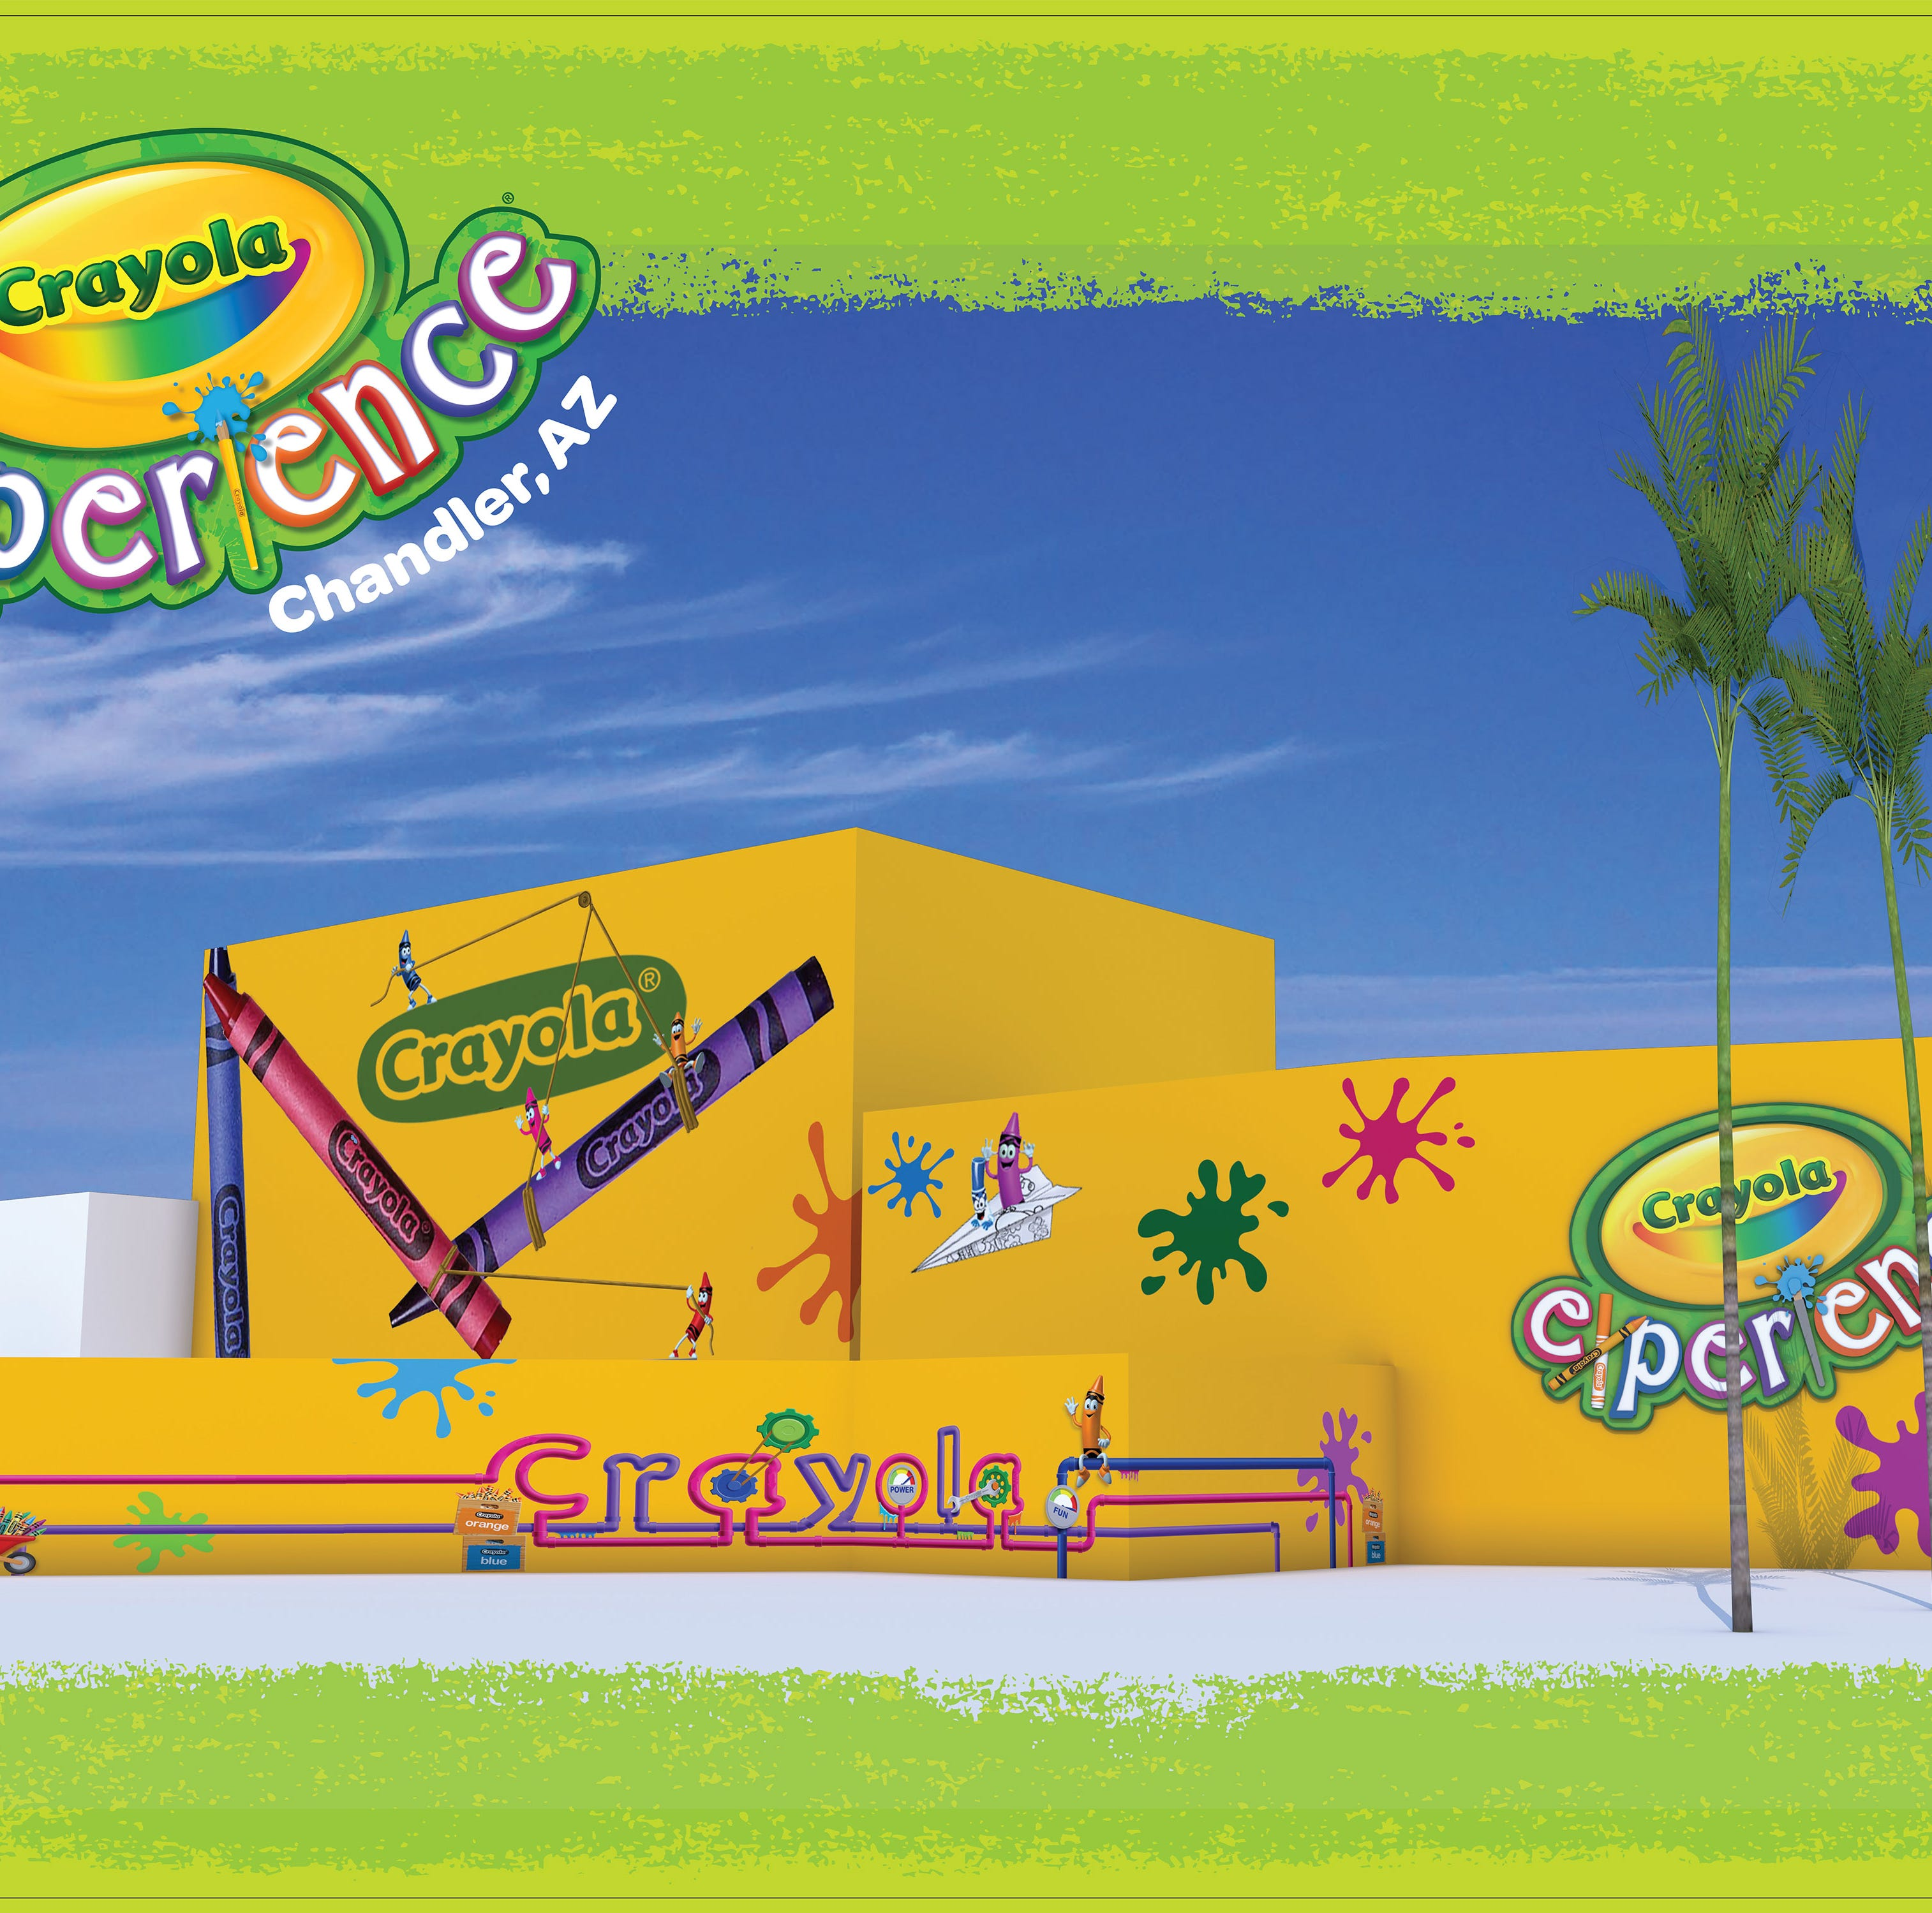 Kid-friendly Crayola Experience set to open at Chandler Fashion Center